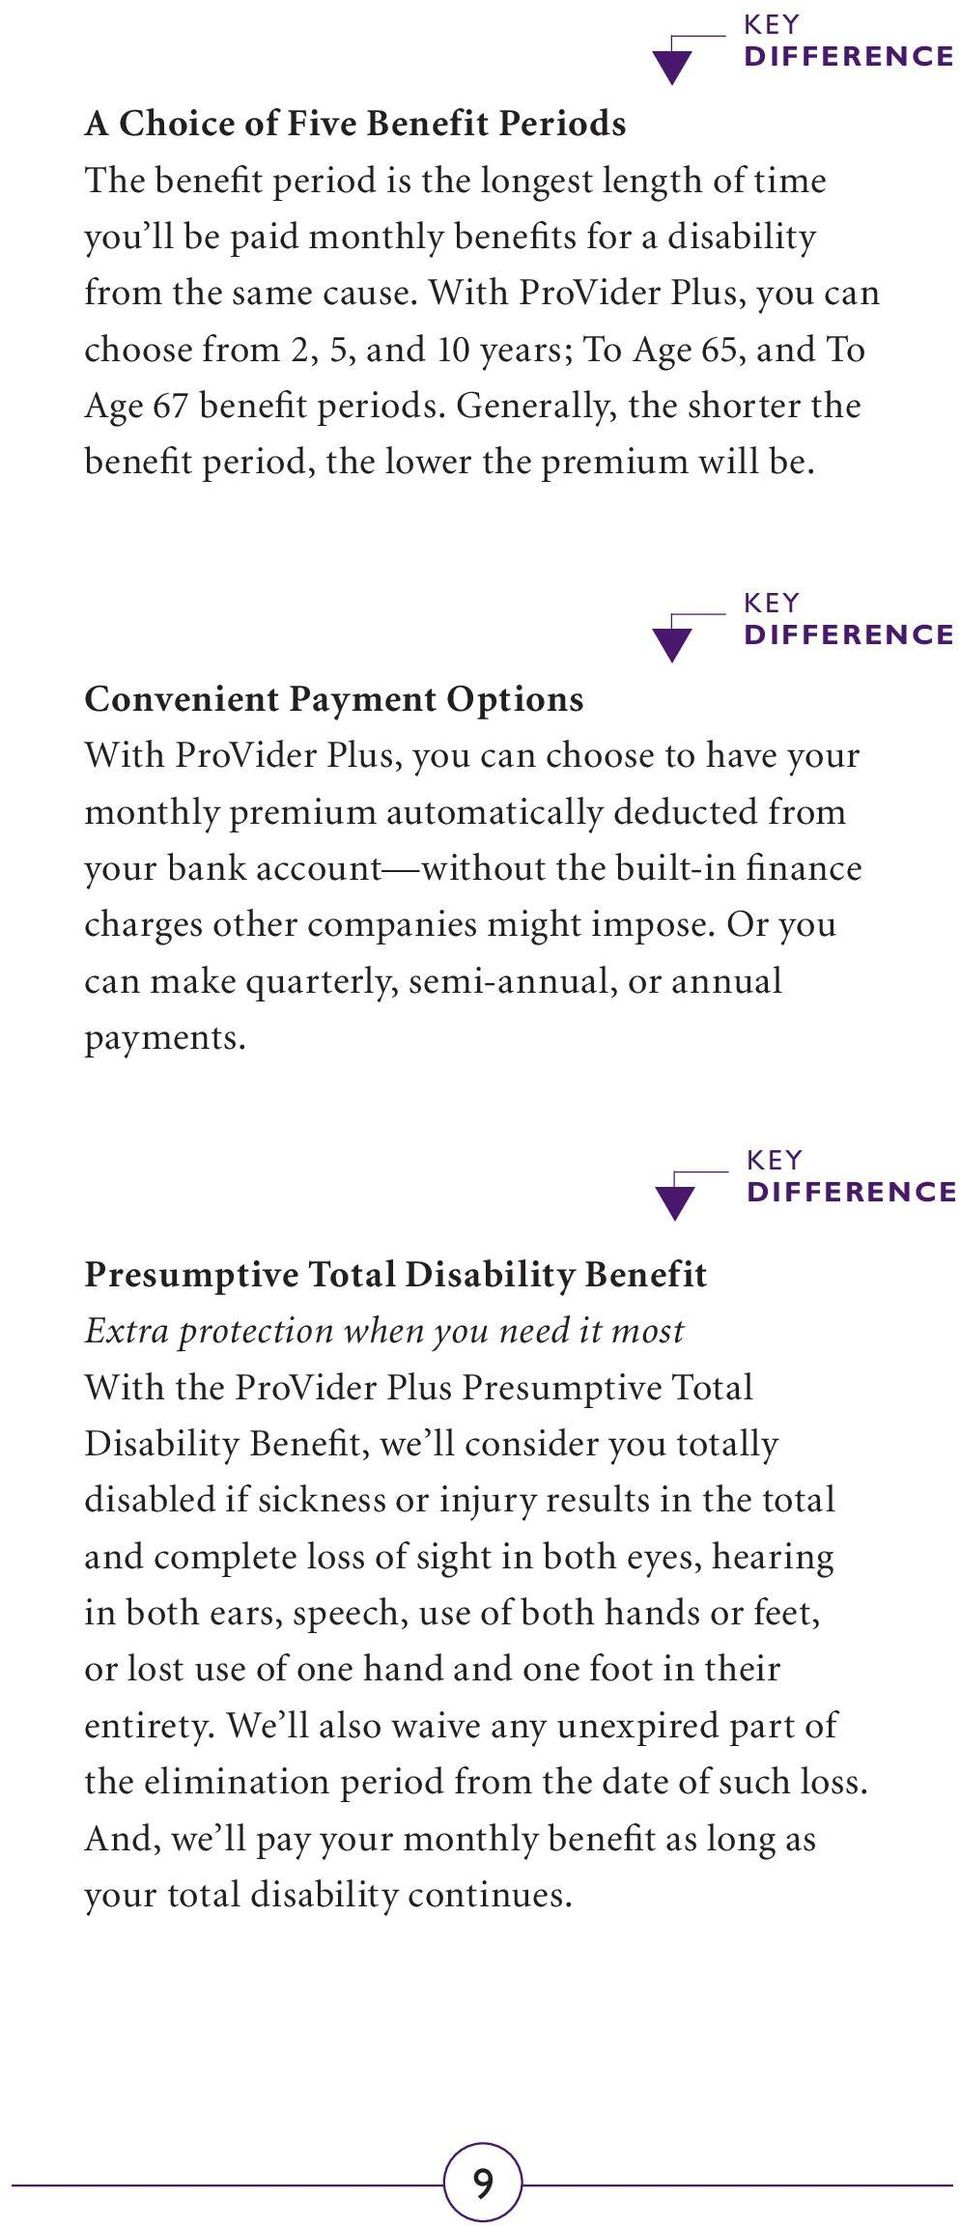 Key Difference Convenient Payment Options With ProVider Plus, you can choose to have your monthly premium automatically deducted from your bank account without the built-in finance charges other